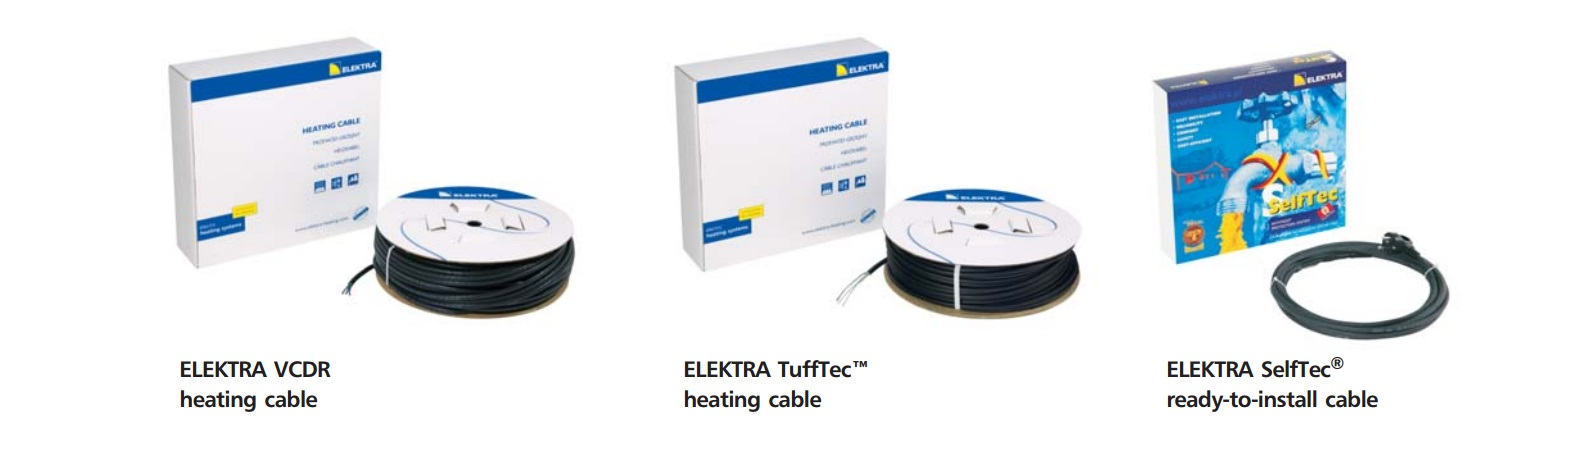 Heating cables frost protection cable accessories ELEKTRA 62